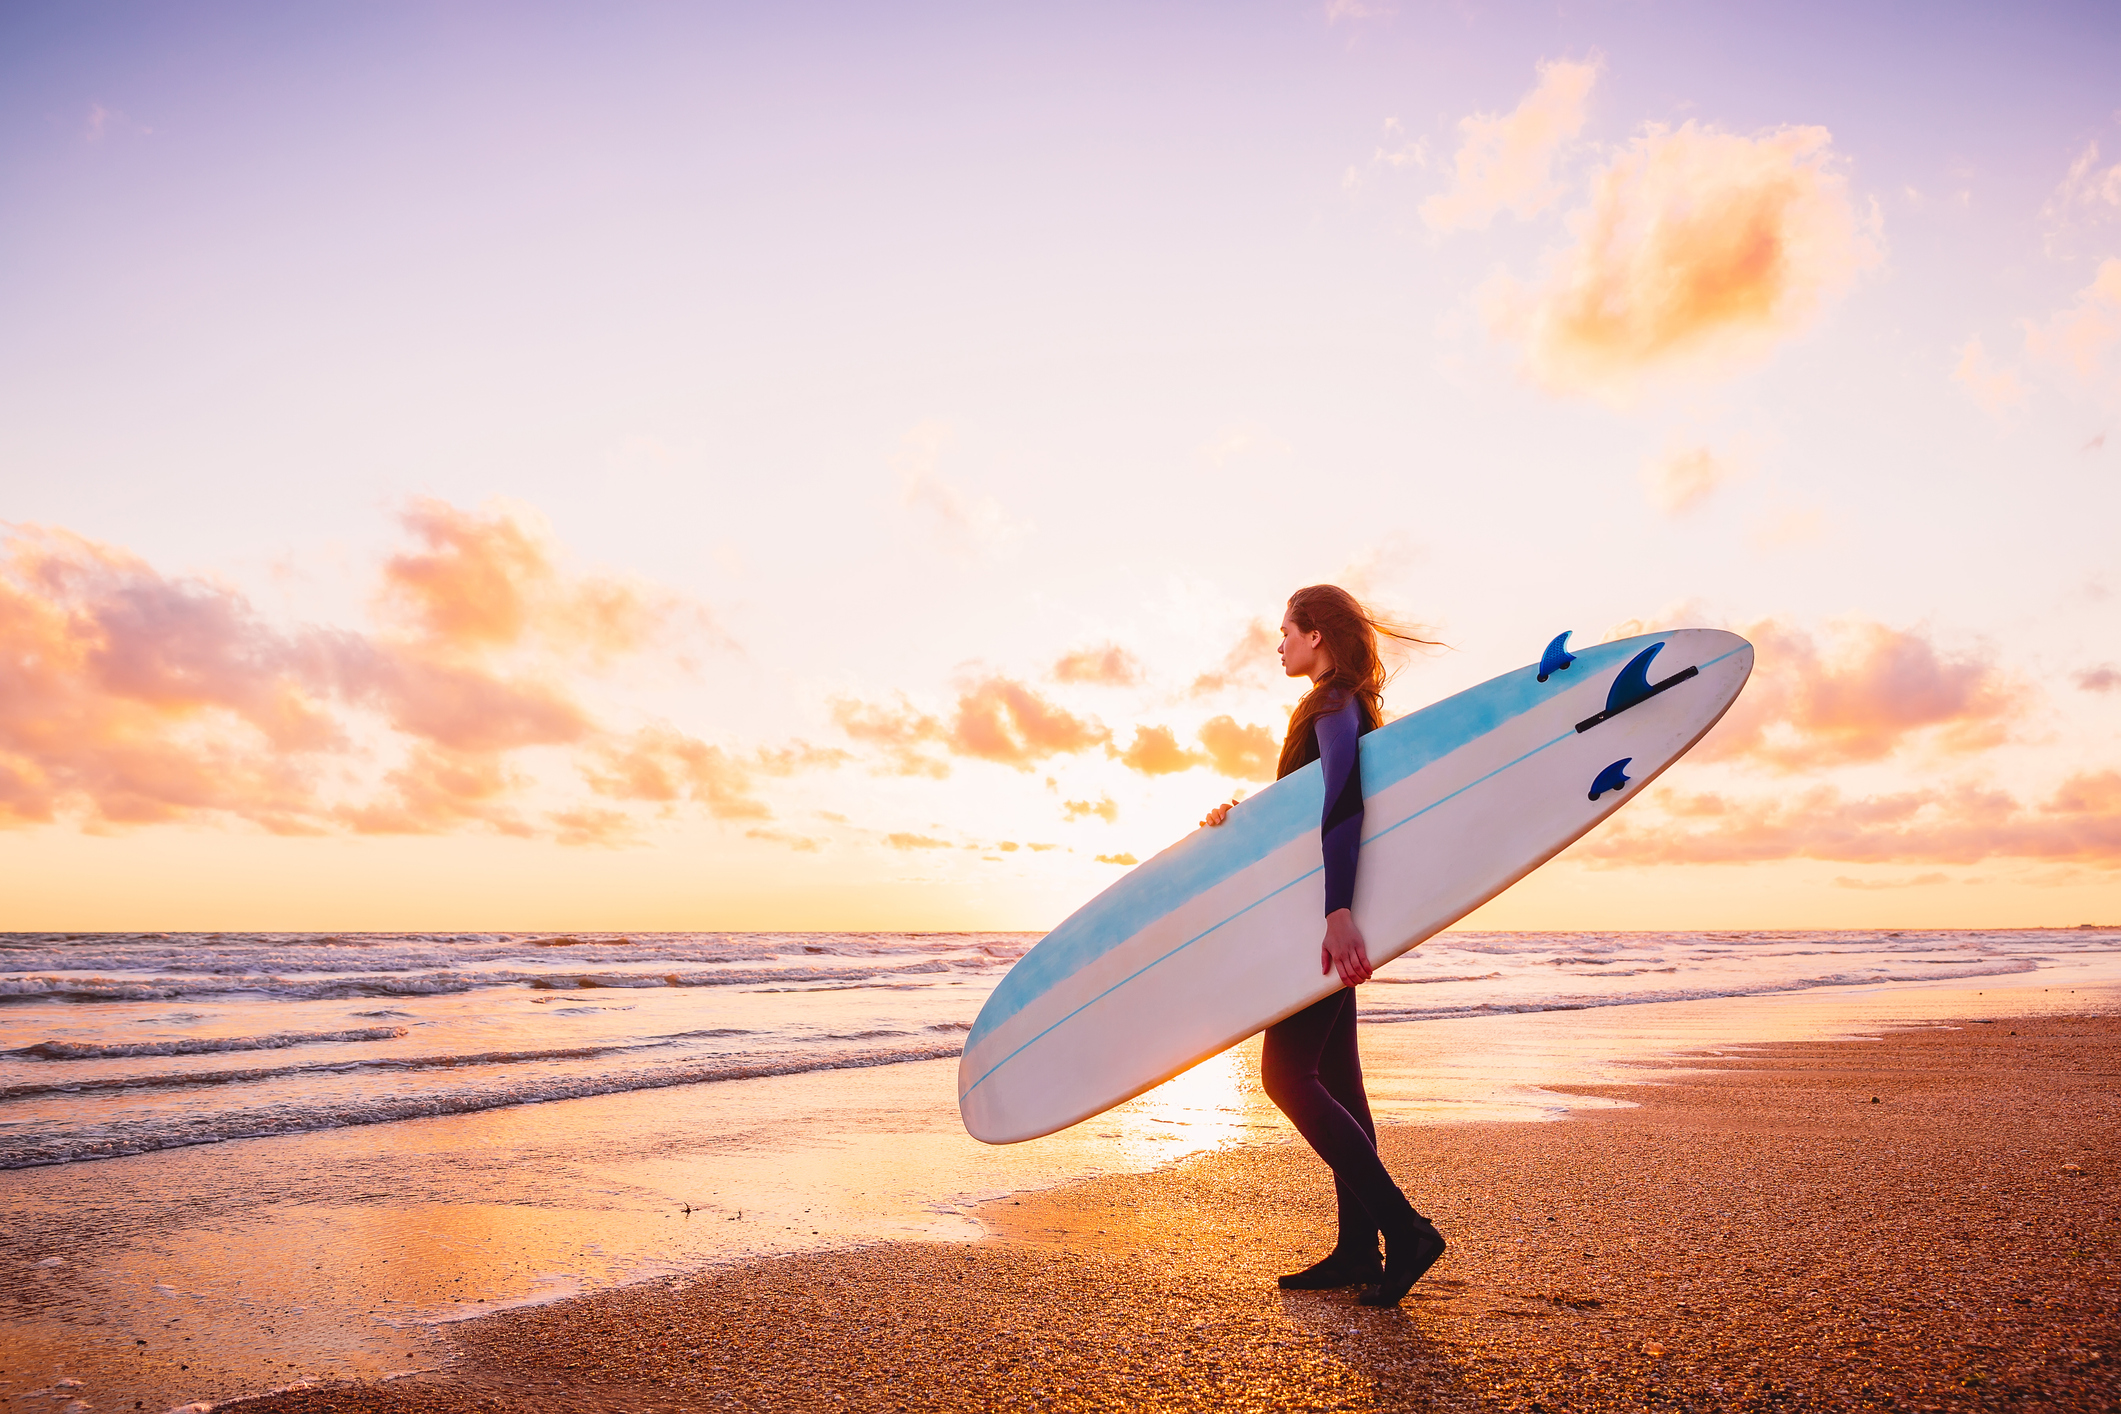 Women surfer